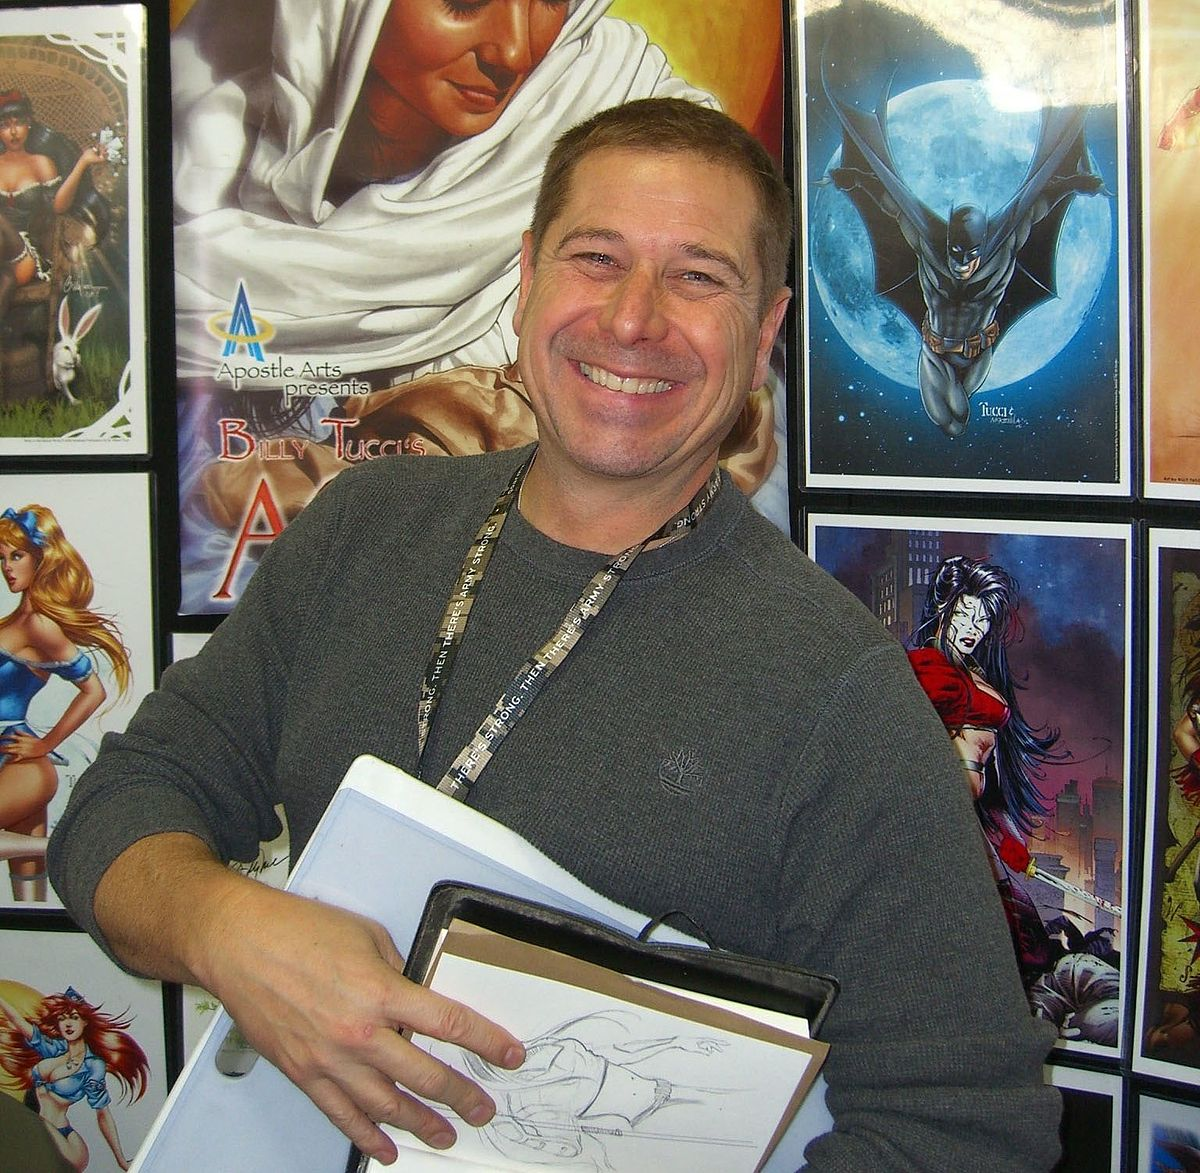 Billy Tucci is coming to Hawaii's best comic con